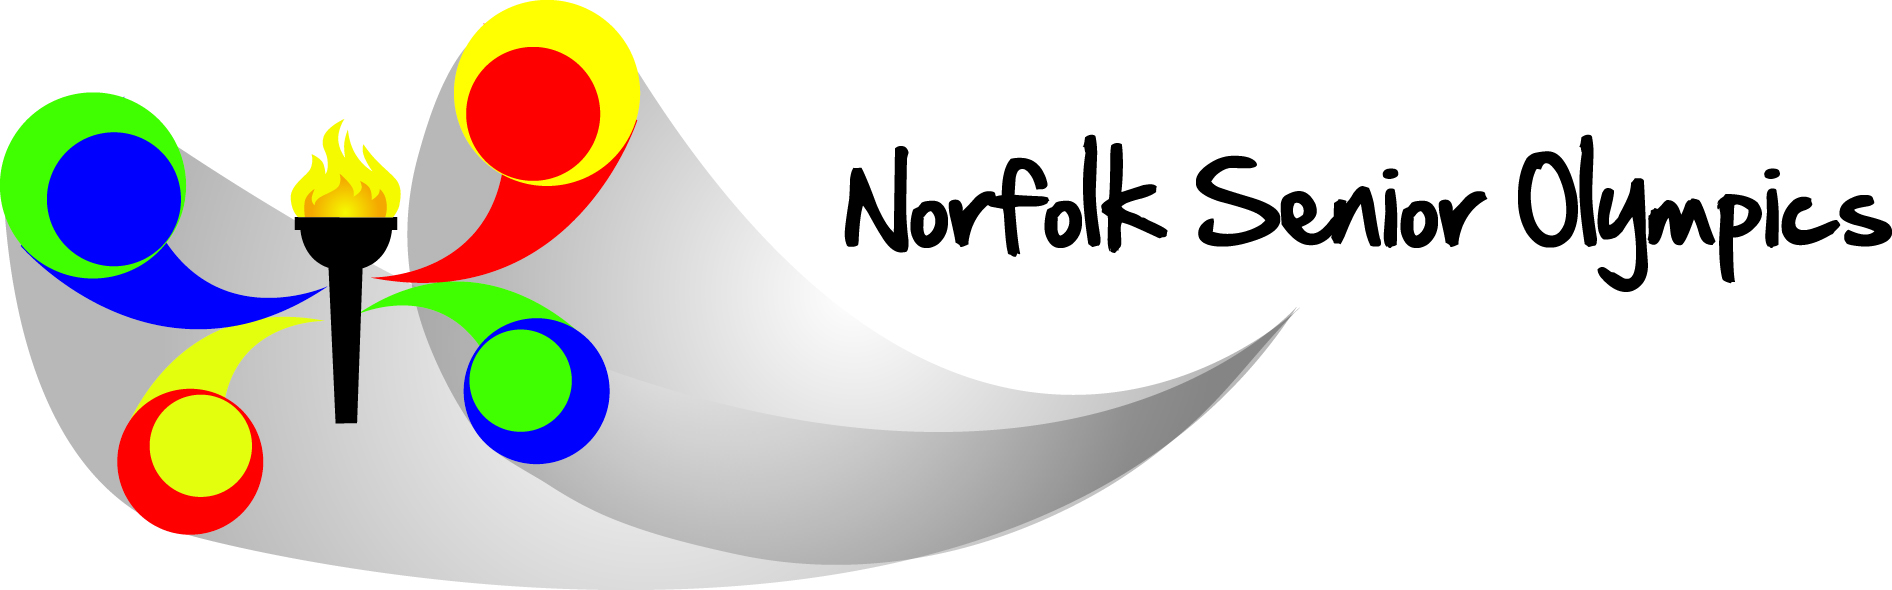 Norfolk Senior Olympics logo